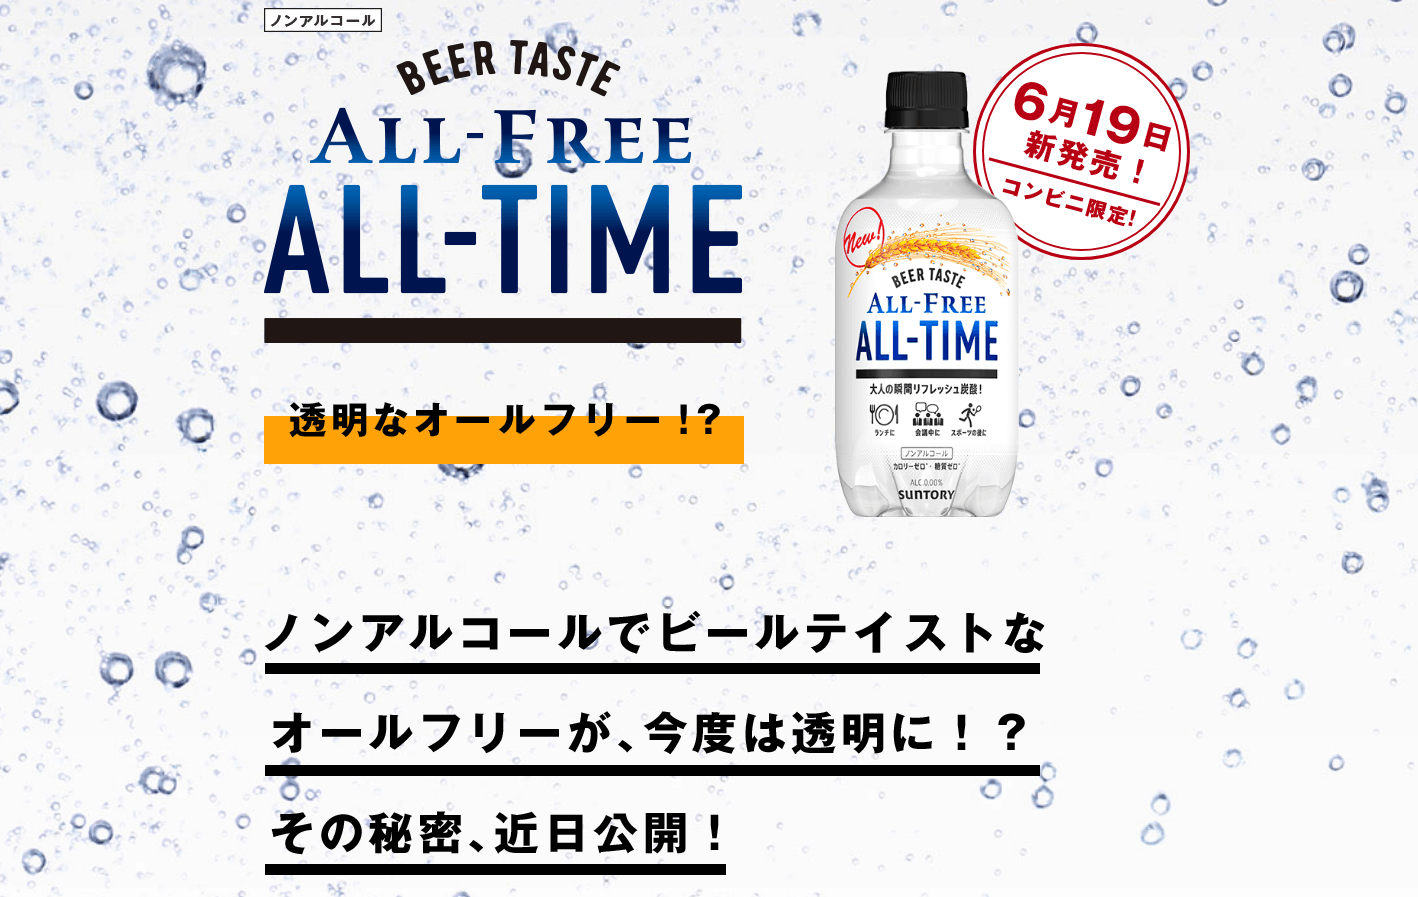 All-Free All Time Beer Taste, Suntory